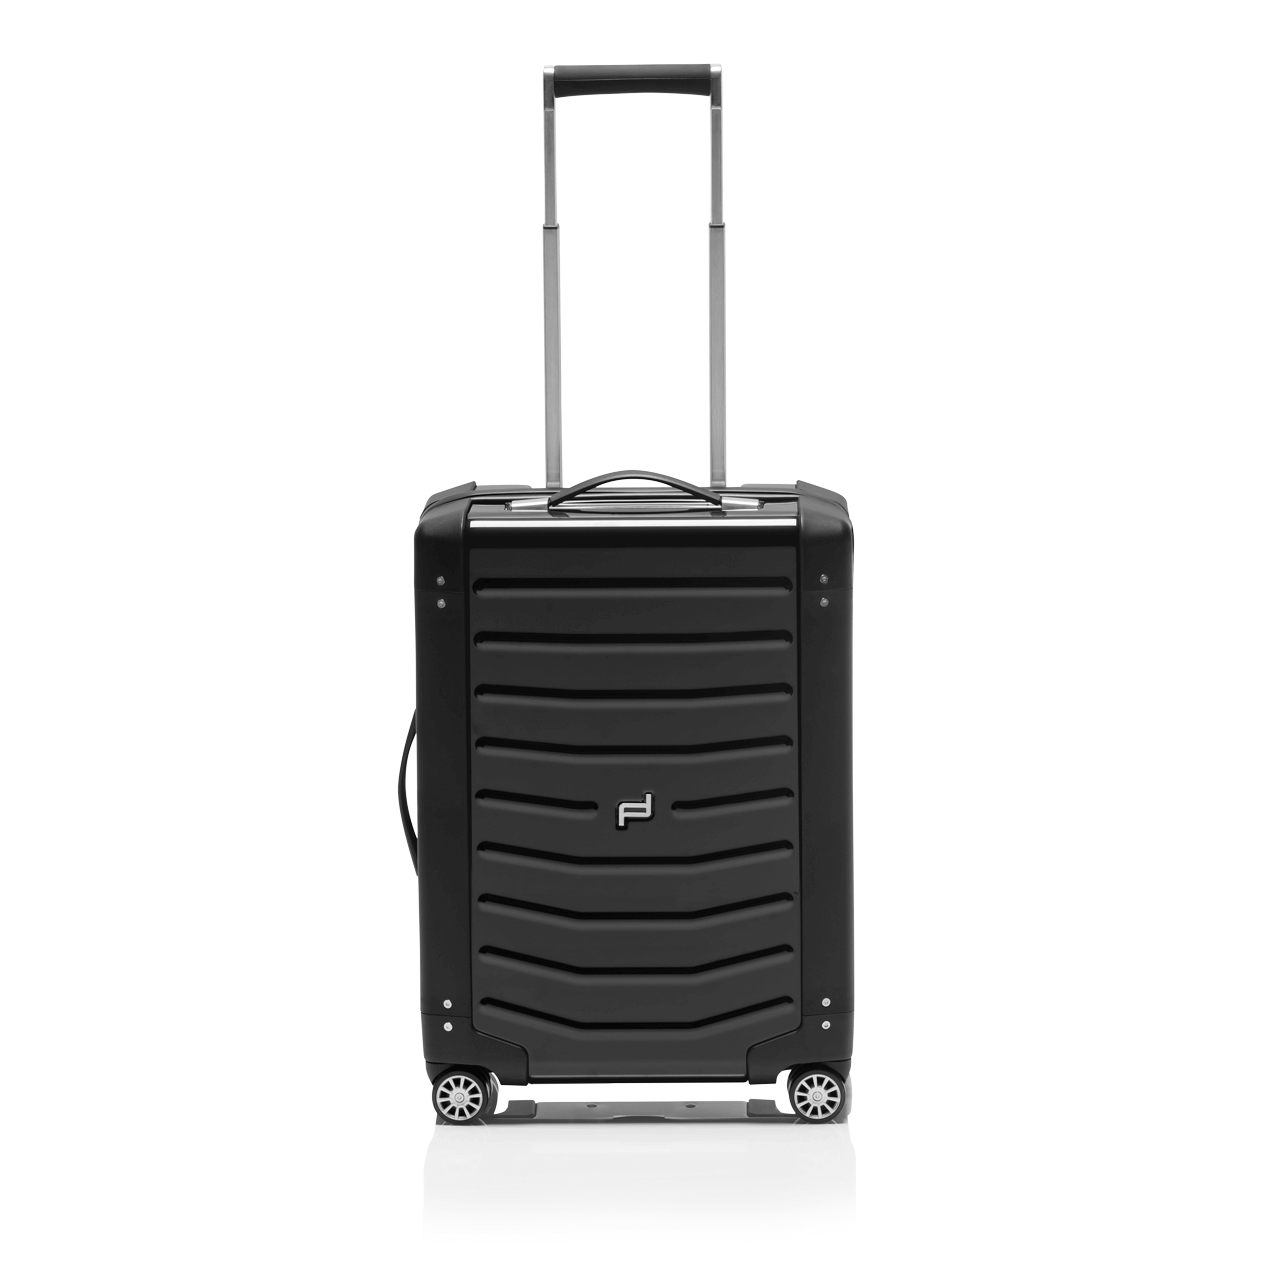 ROADSTER HARDCASE TROLLEY S - фото 2